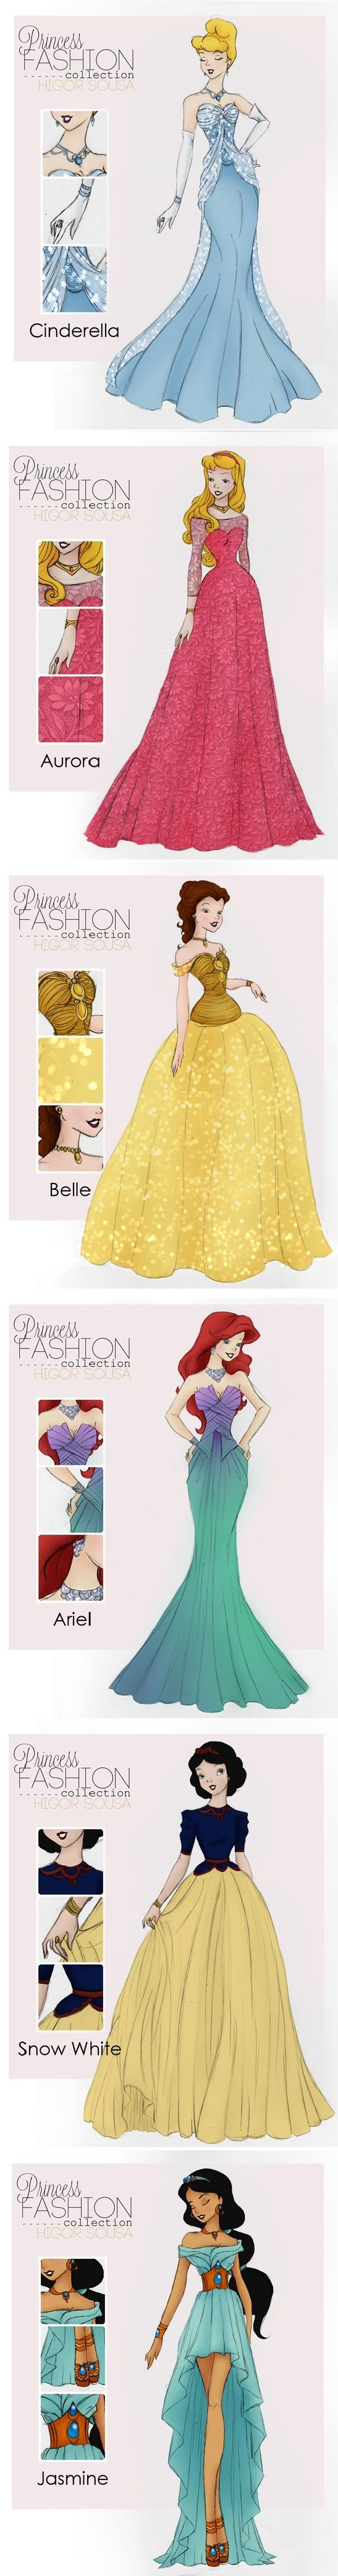 Ariel's hair... ::sigh:: And she lived in the ocean her whole life. I need reality.... MY FAVORITE DRESS IS SNOW WHITES!!